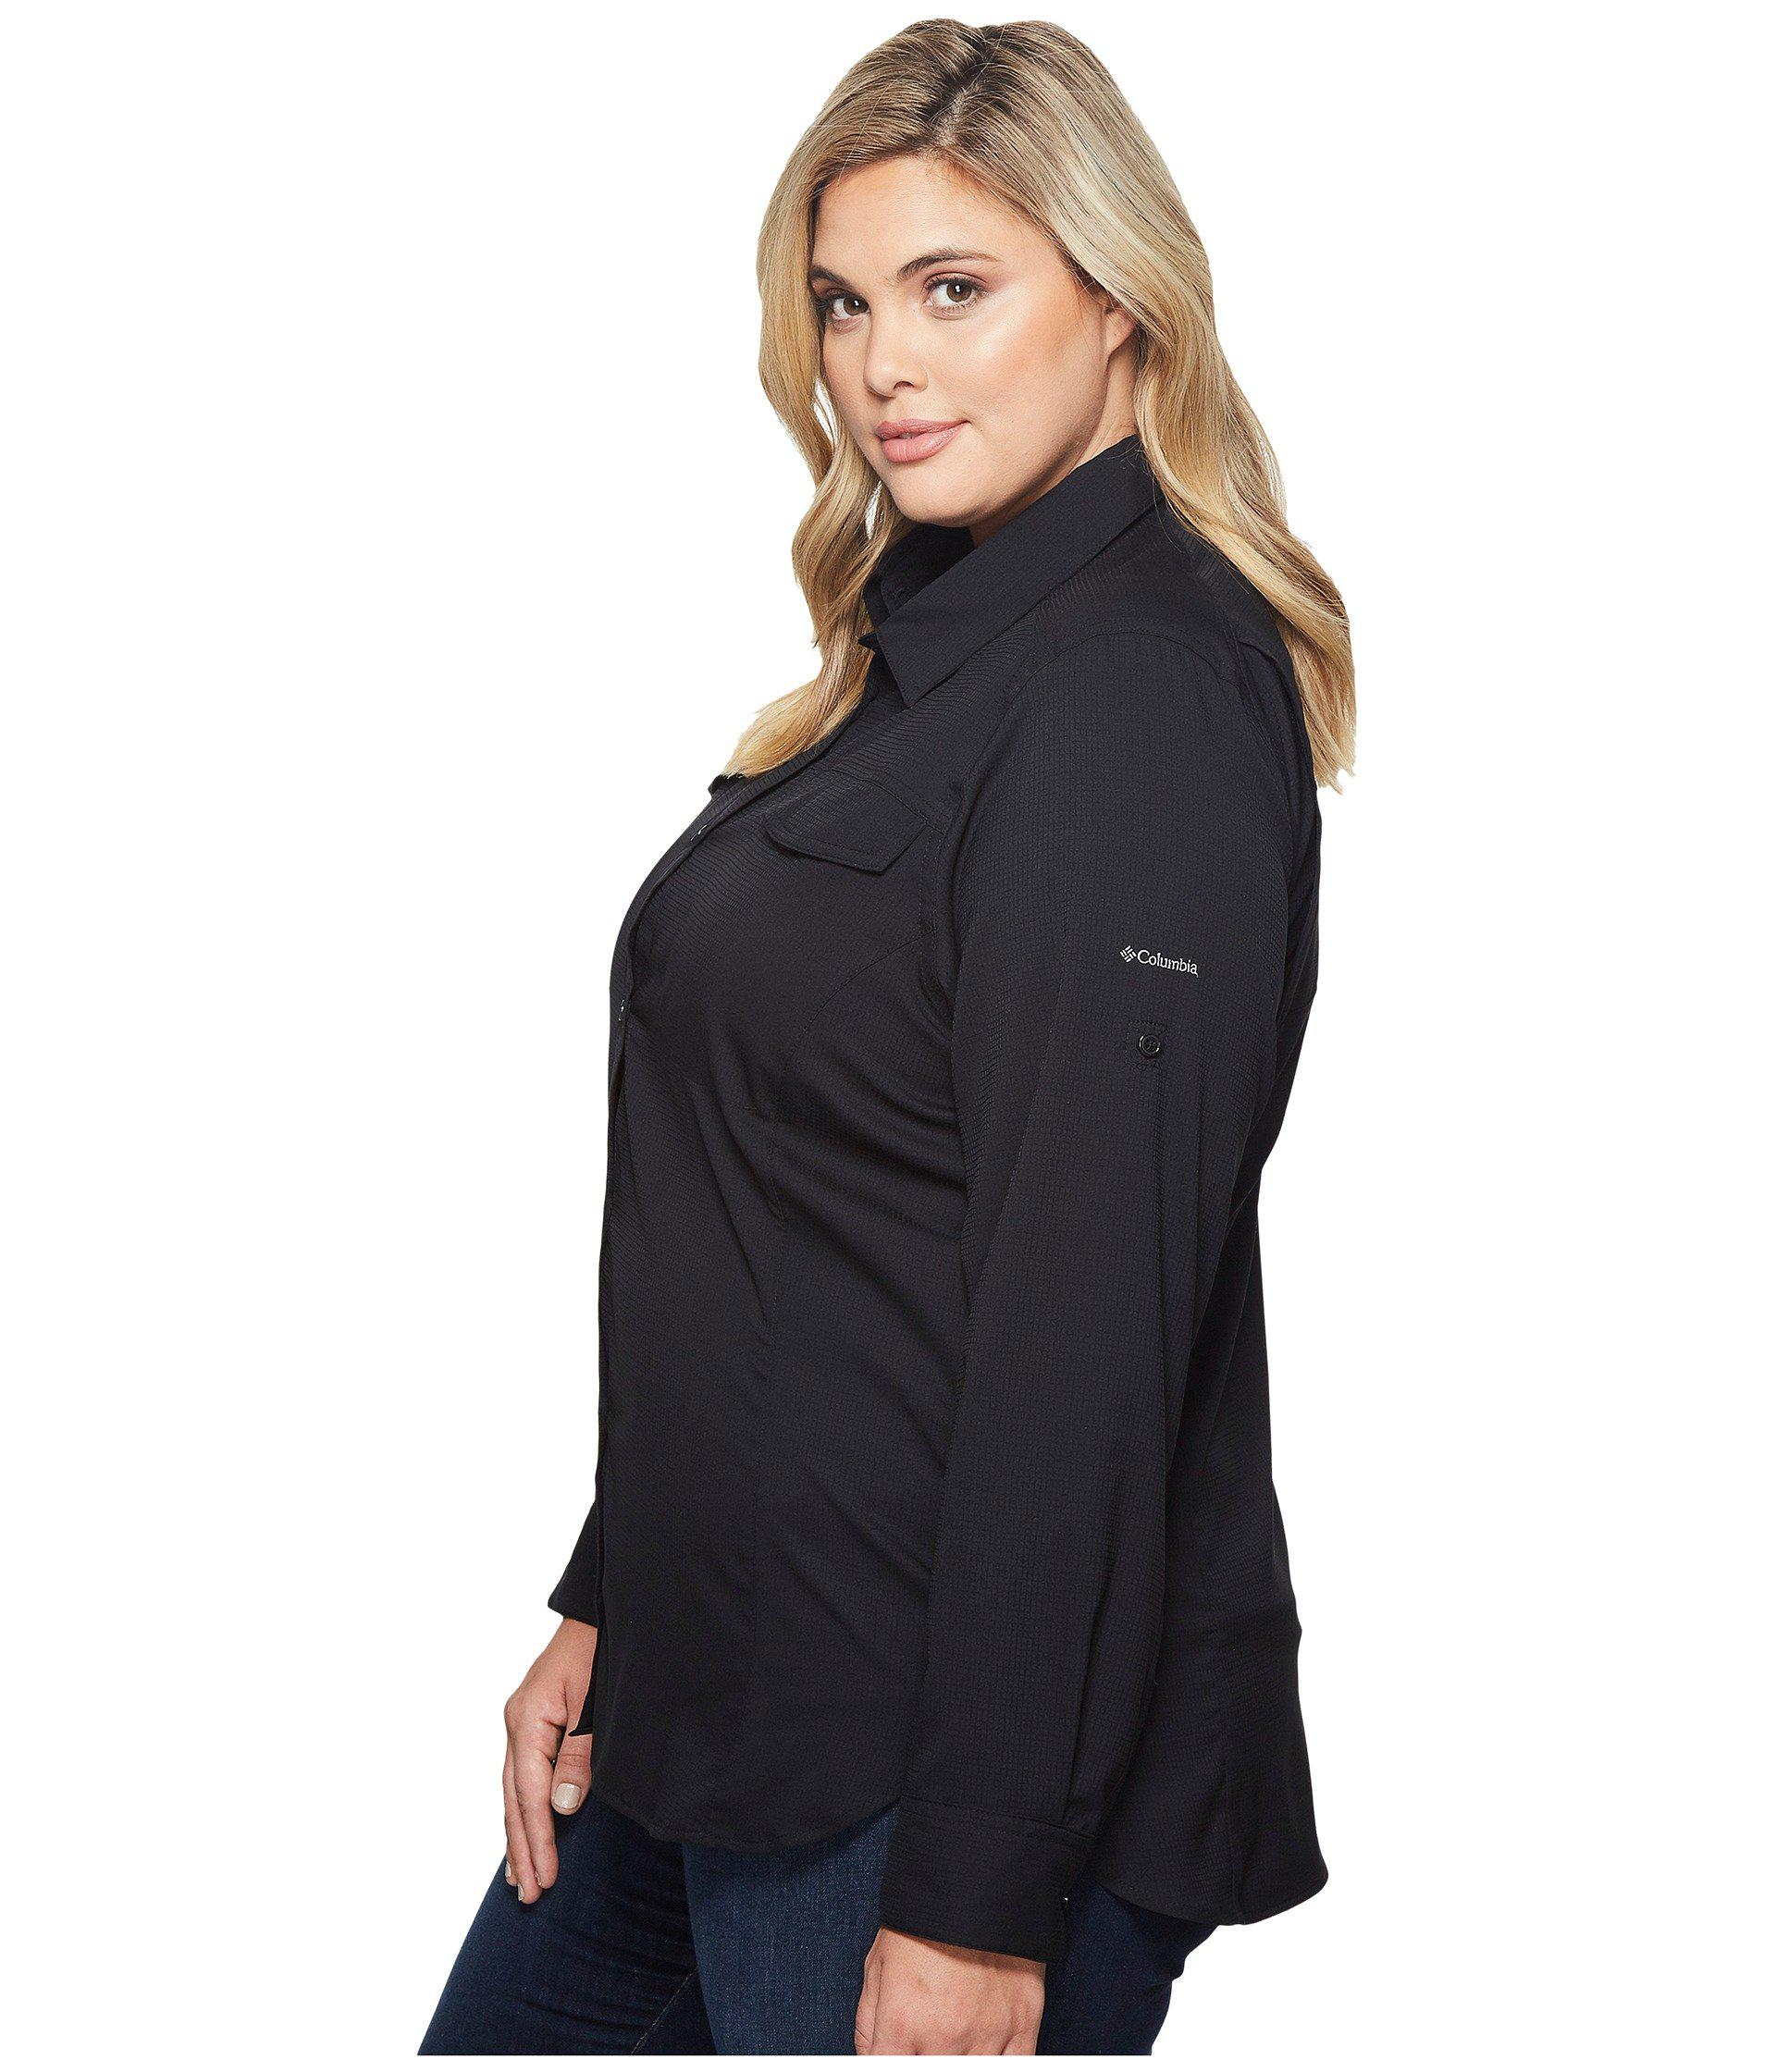 2ffede9a291 Lyst - Columbia Plus Size Silver Ridge Lite Long Sleeve Shirt (white) Women s  Long Sleeve Button Up in Black